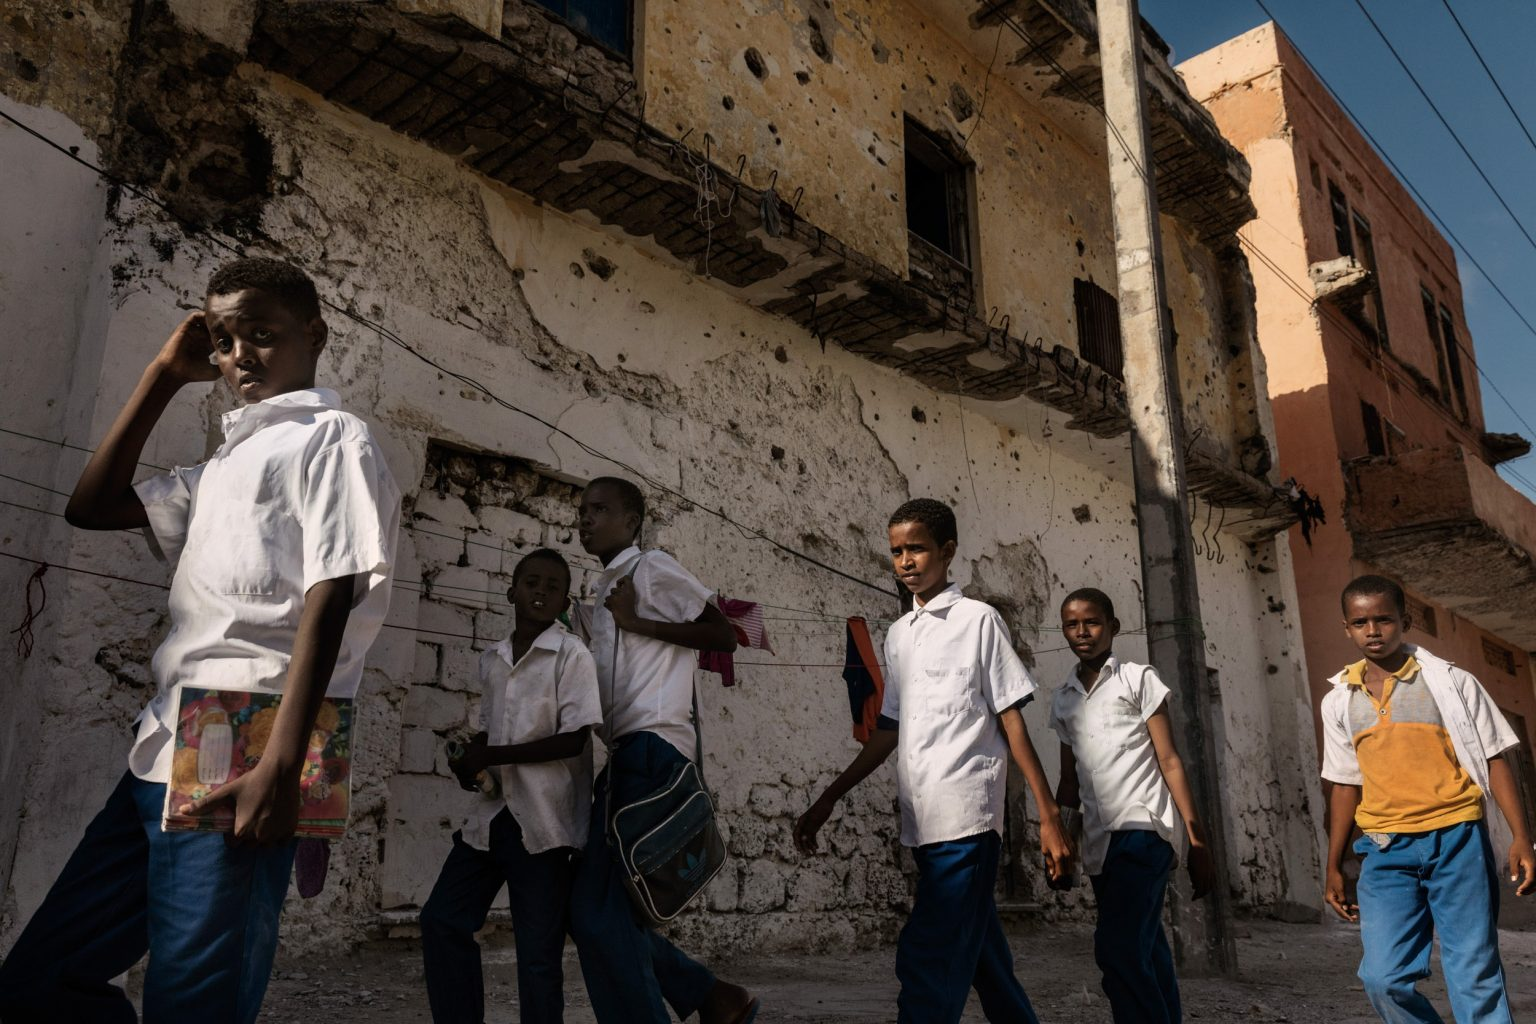 """Africa, Somalia, Benaadir region. Mogadishu. 19/ 09/2017 Students return home after school, walking through the war-torn Hamarweyne and Shangani districts, located in the old town of the Somali capital; the literal meaning of Hamarweyne is """"big city"""" or """"old town"""". The climate of terror, the corrupt state administration and the formation of armed clan groups are all contributing factors to the disease that has been devouring Somalia for decades, but rising up against it today is the collective sentiment of a people that does not wish to feel alone and has decided to take its destiny into its own hands in order to conquer fear and look to the future."""